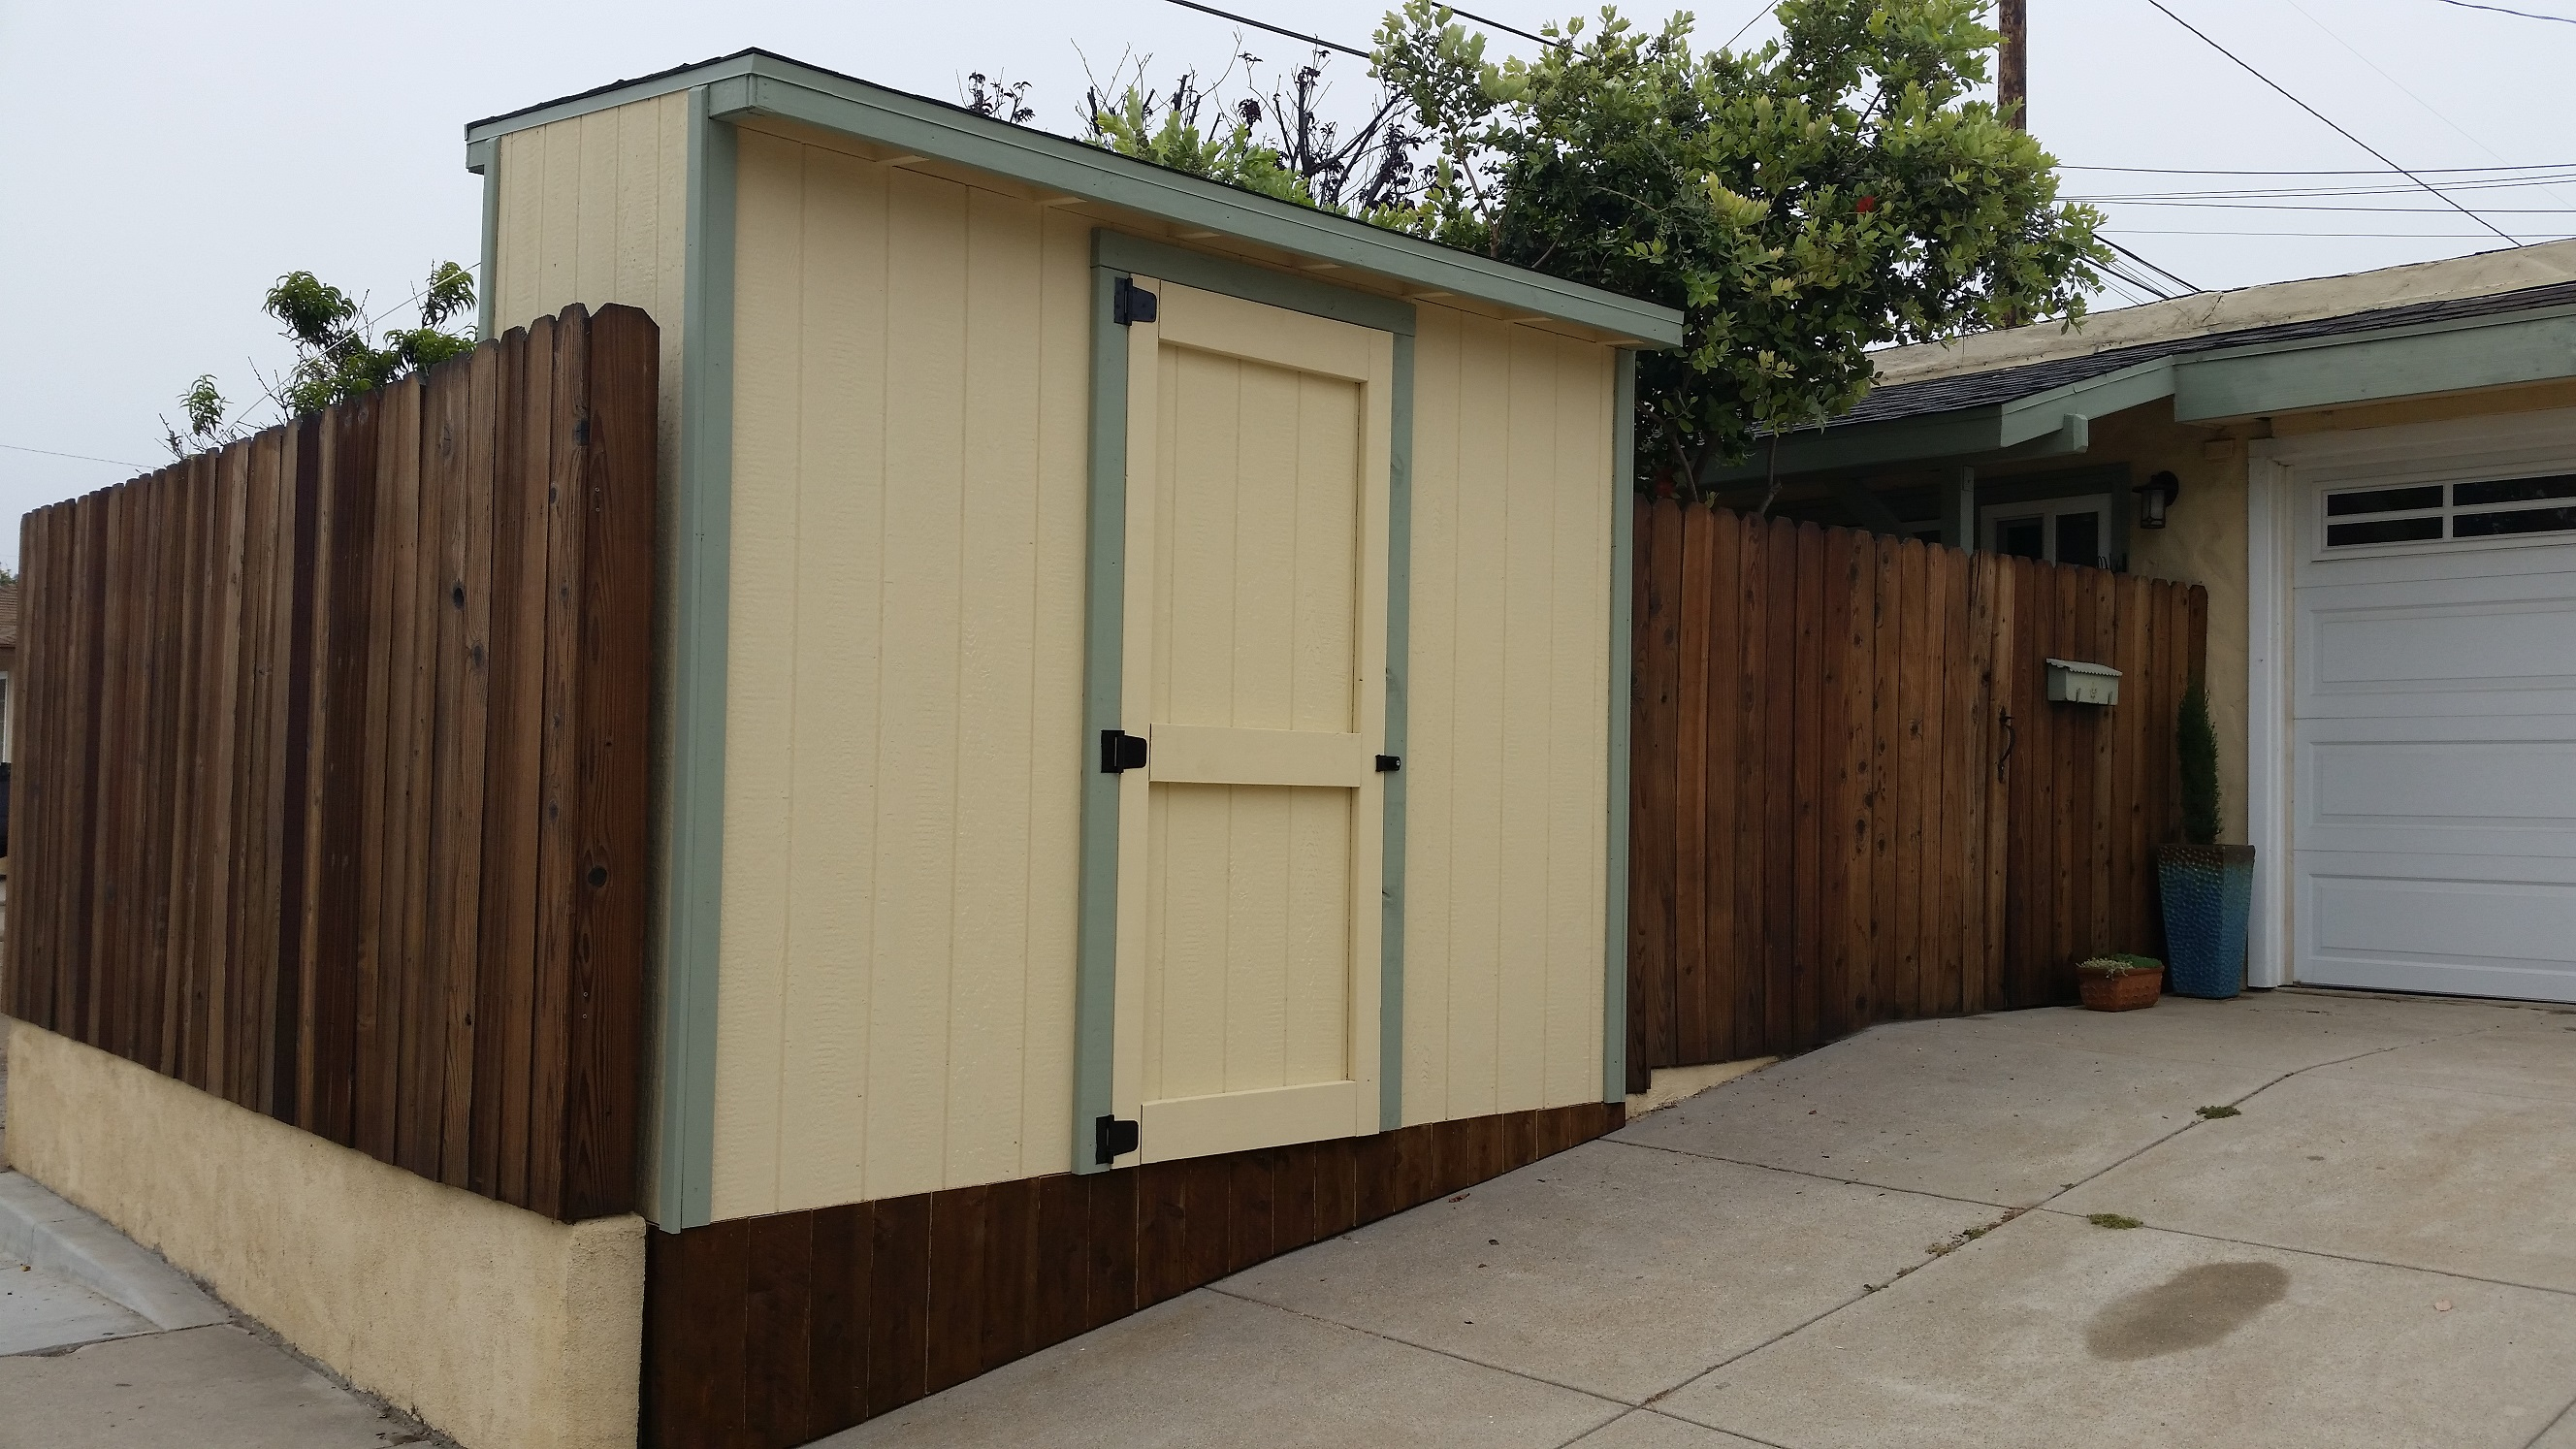 4x8' Storage Shed in Ventura